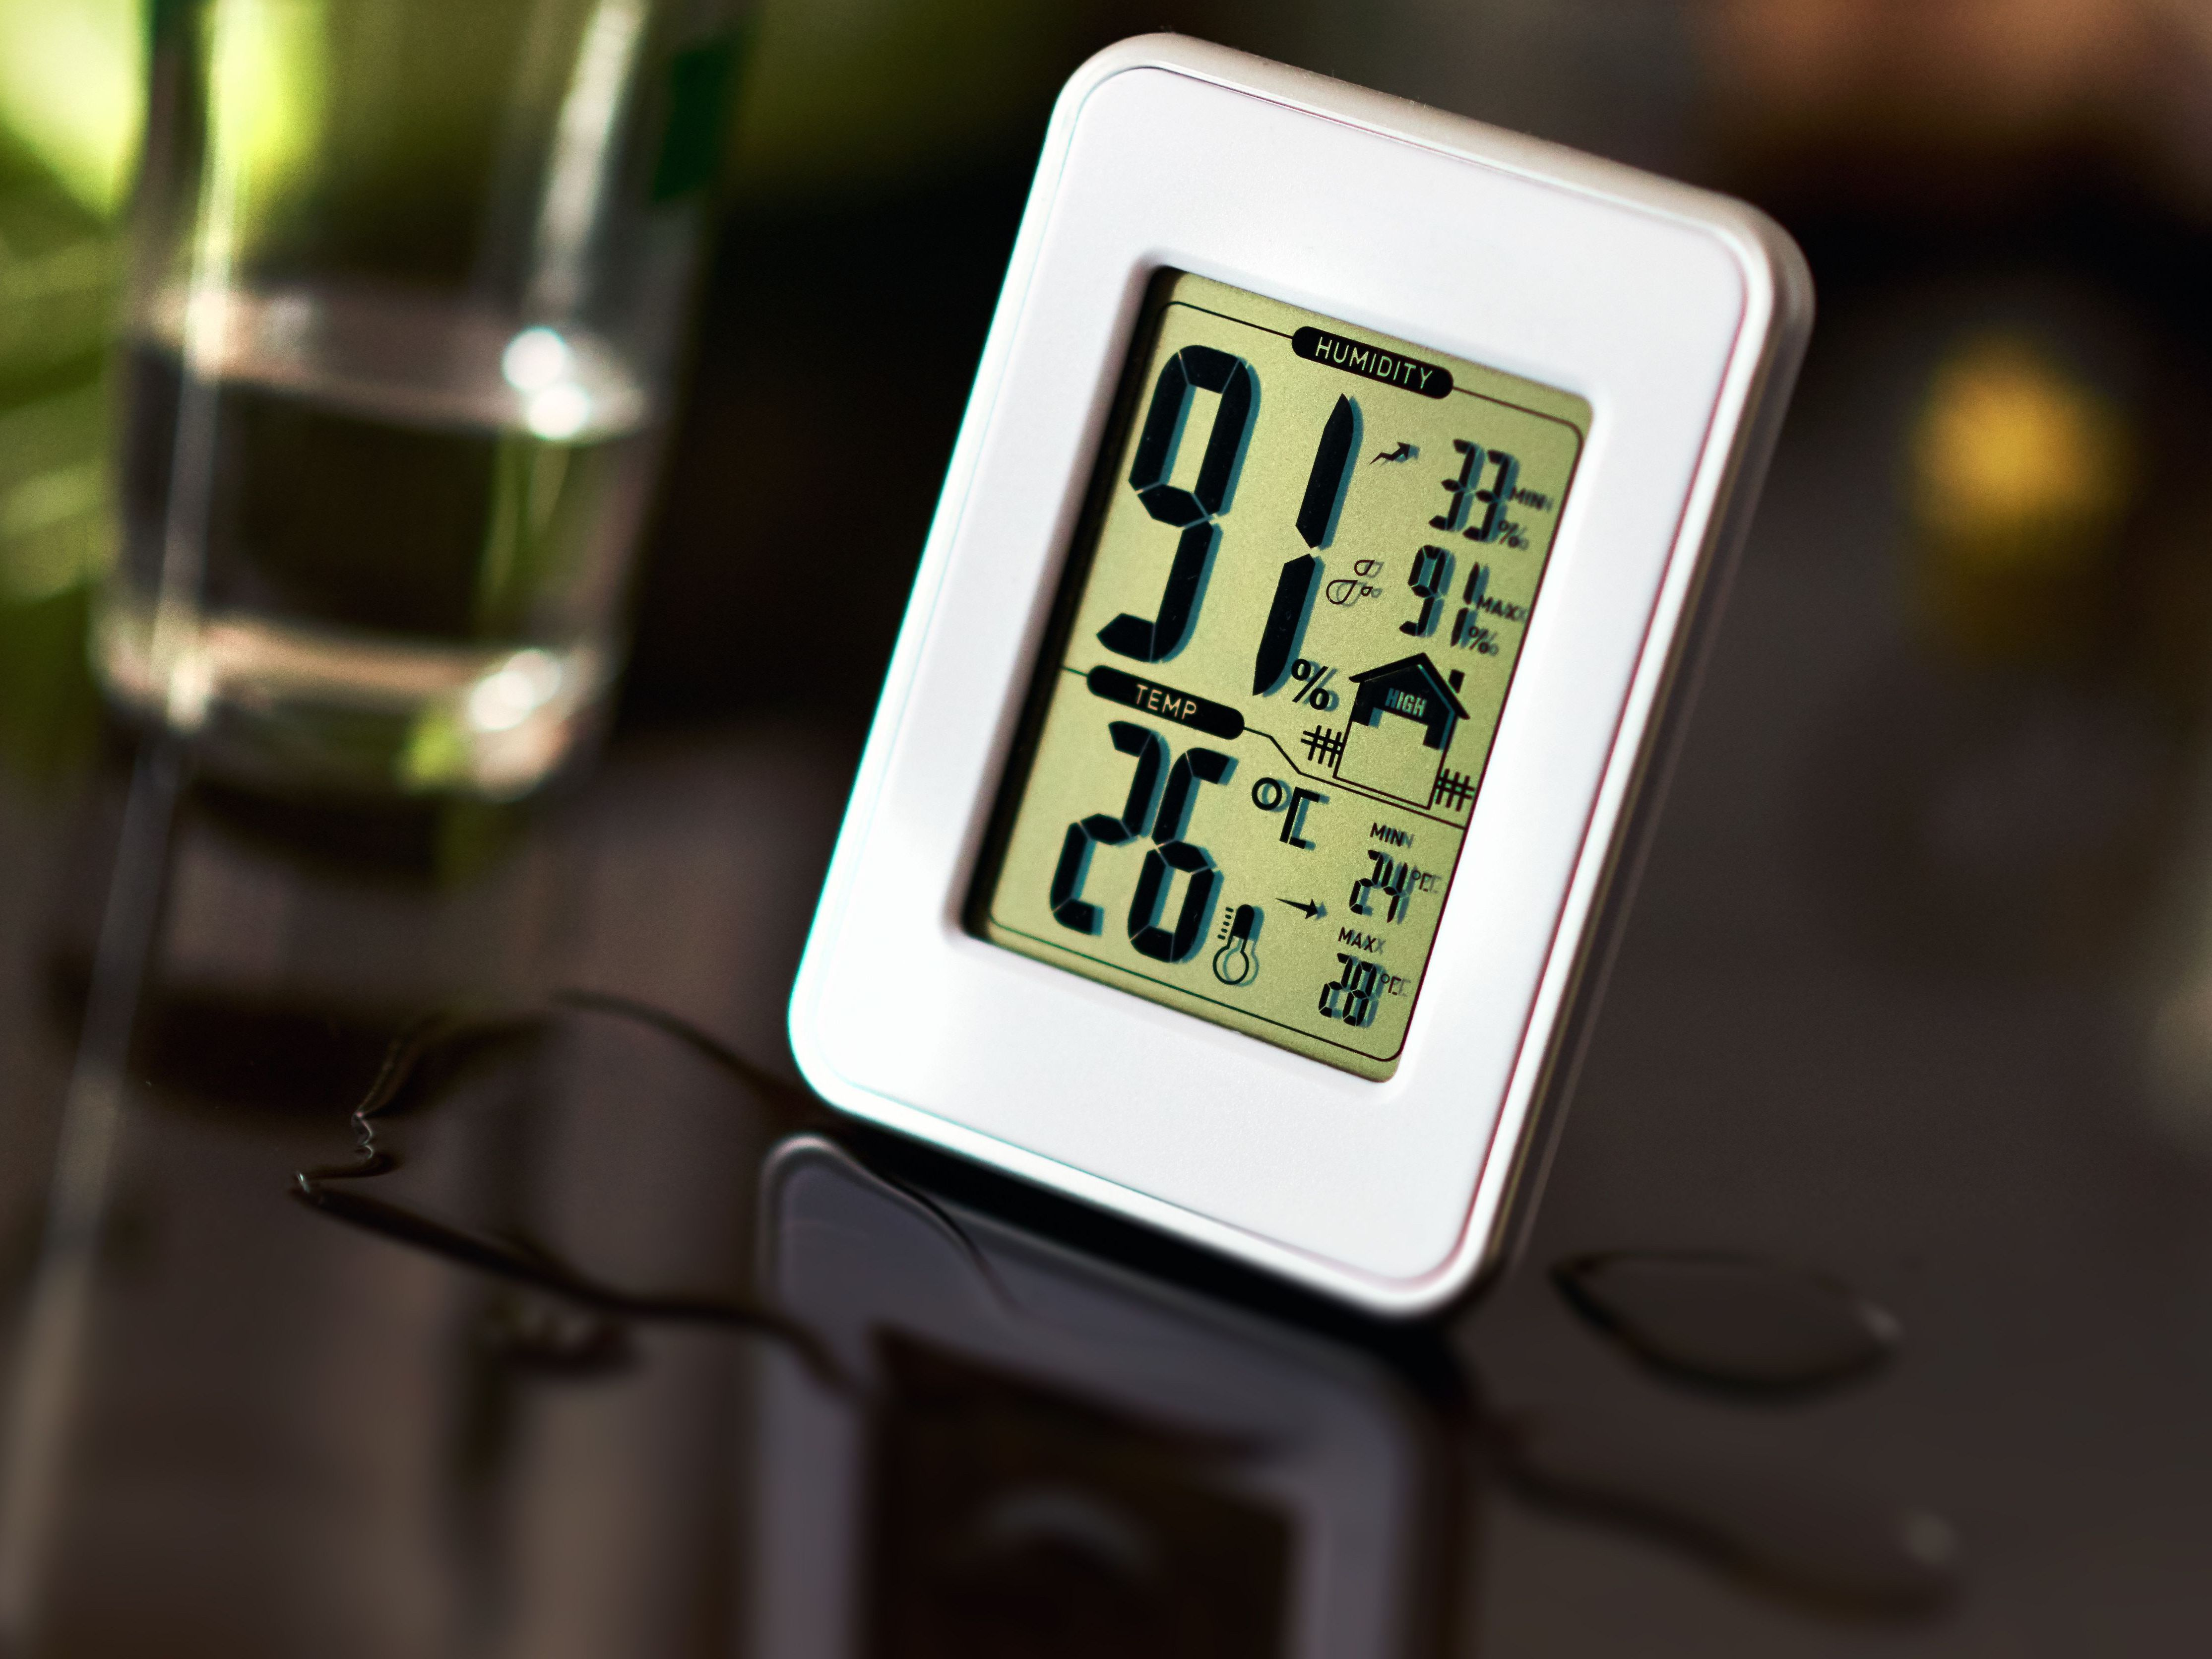 Twin Dial Thermometer Hygrometer To Measure Temperature and Humidity Levels